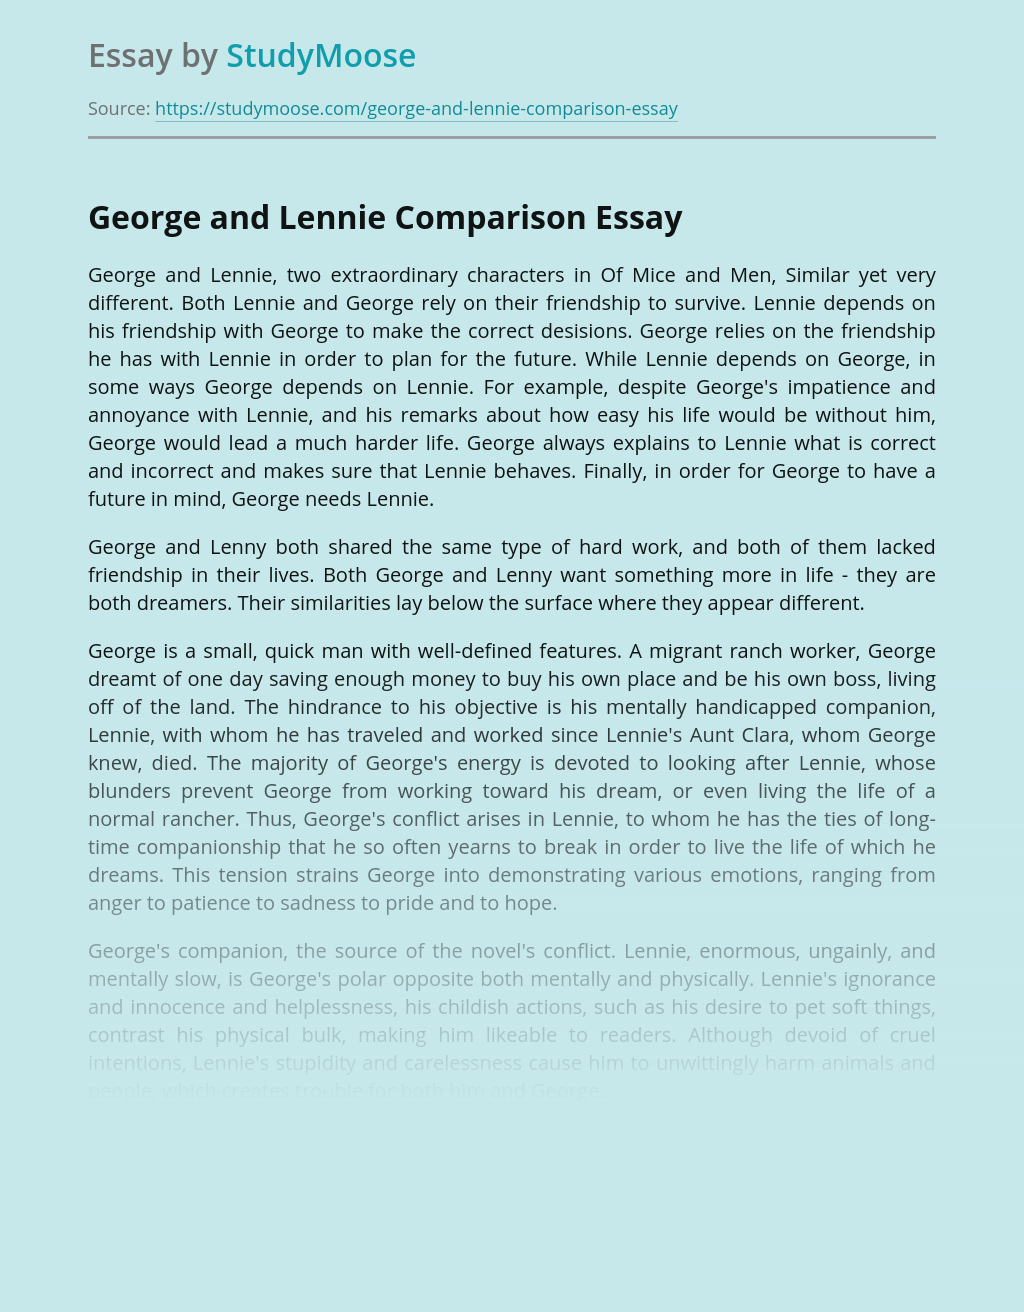 George and Lennie Comparison